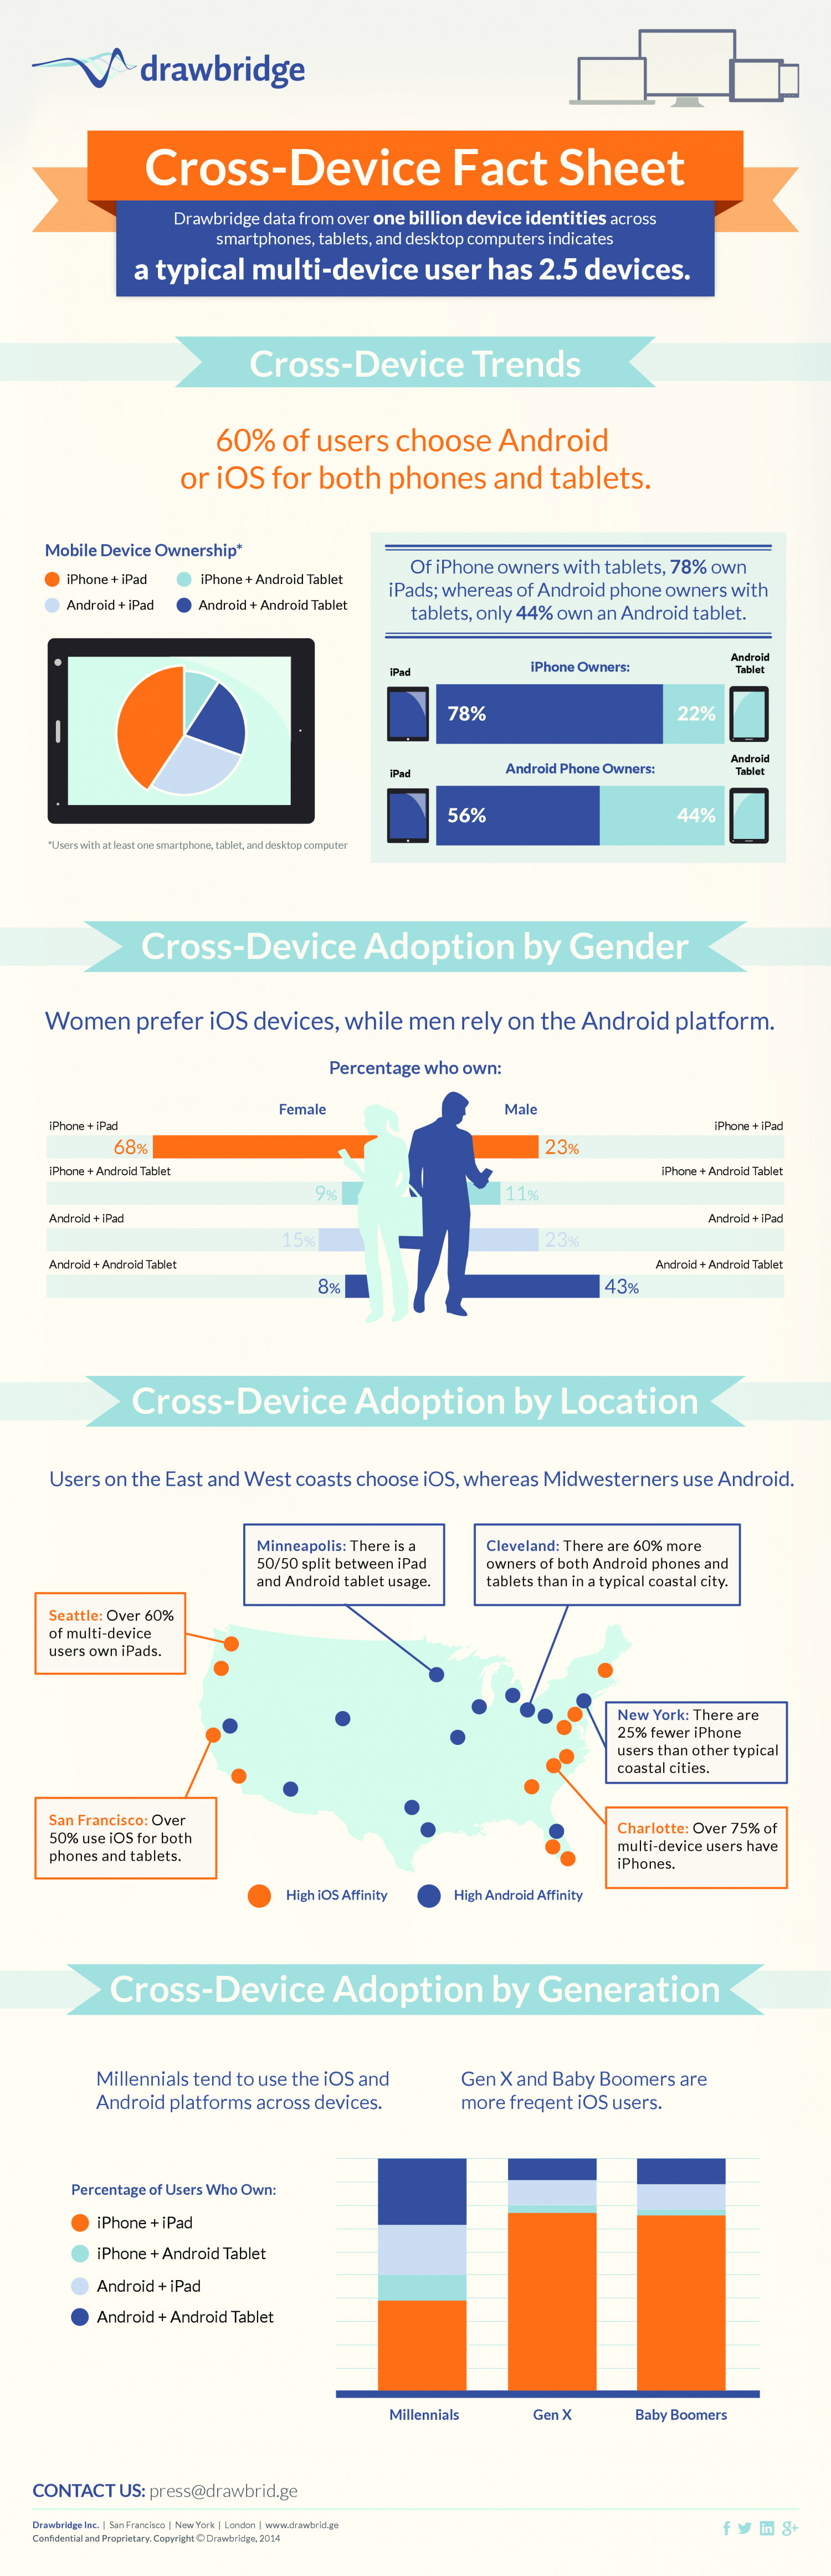 Drawbridge's Cross-Device Fact Sheet Infographic